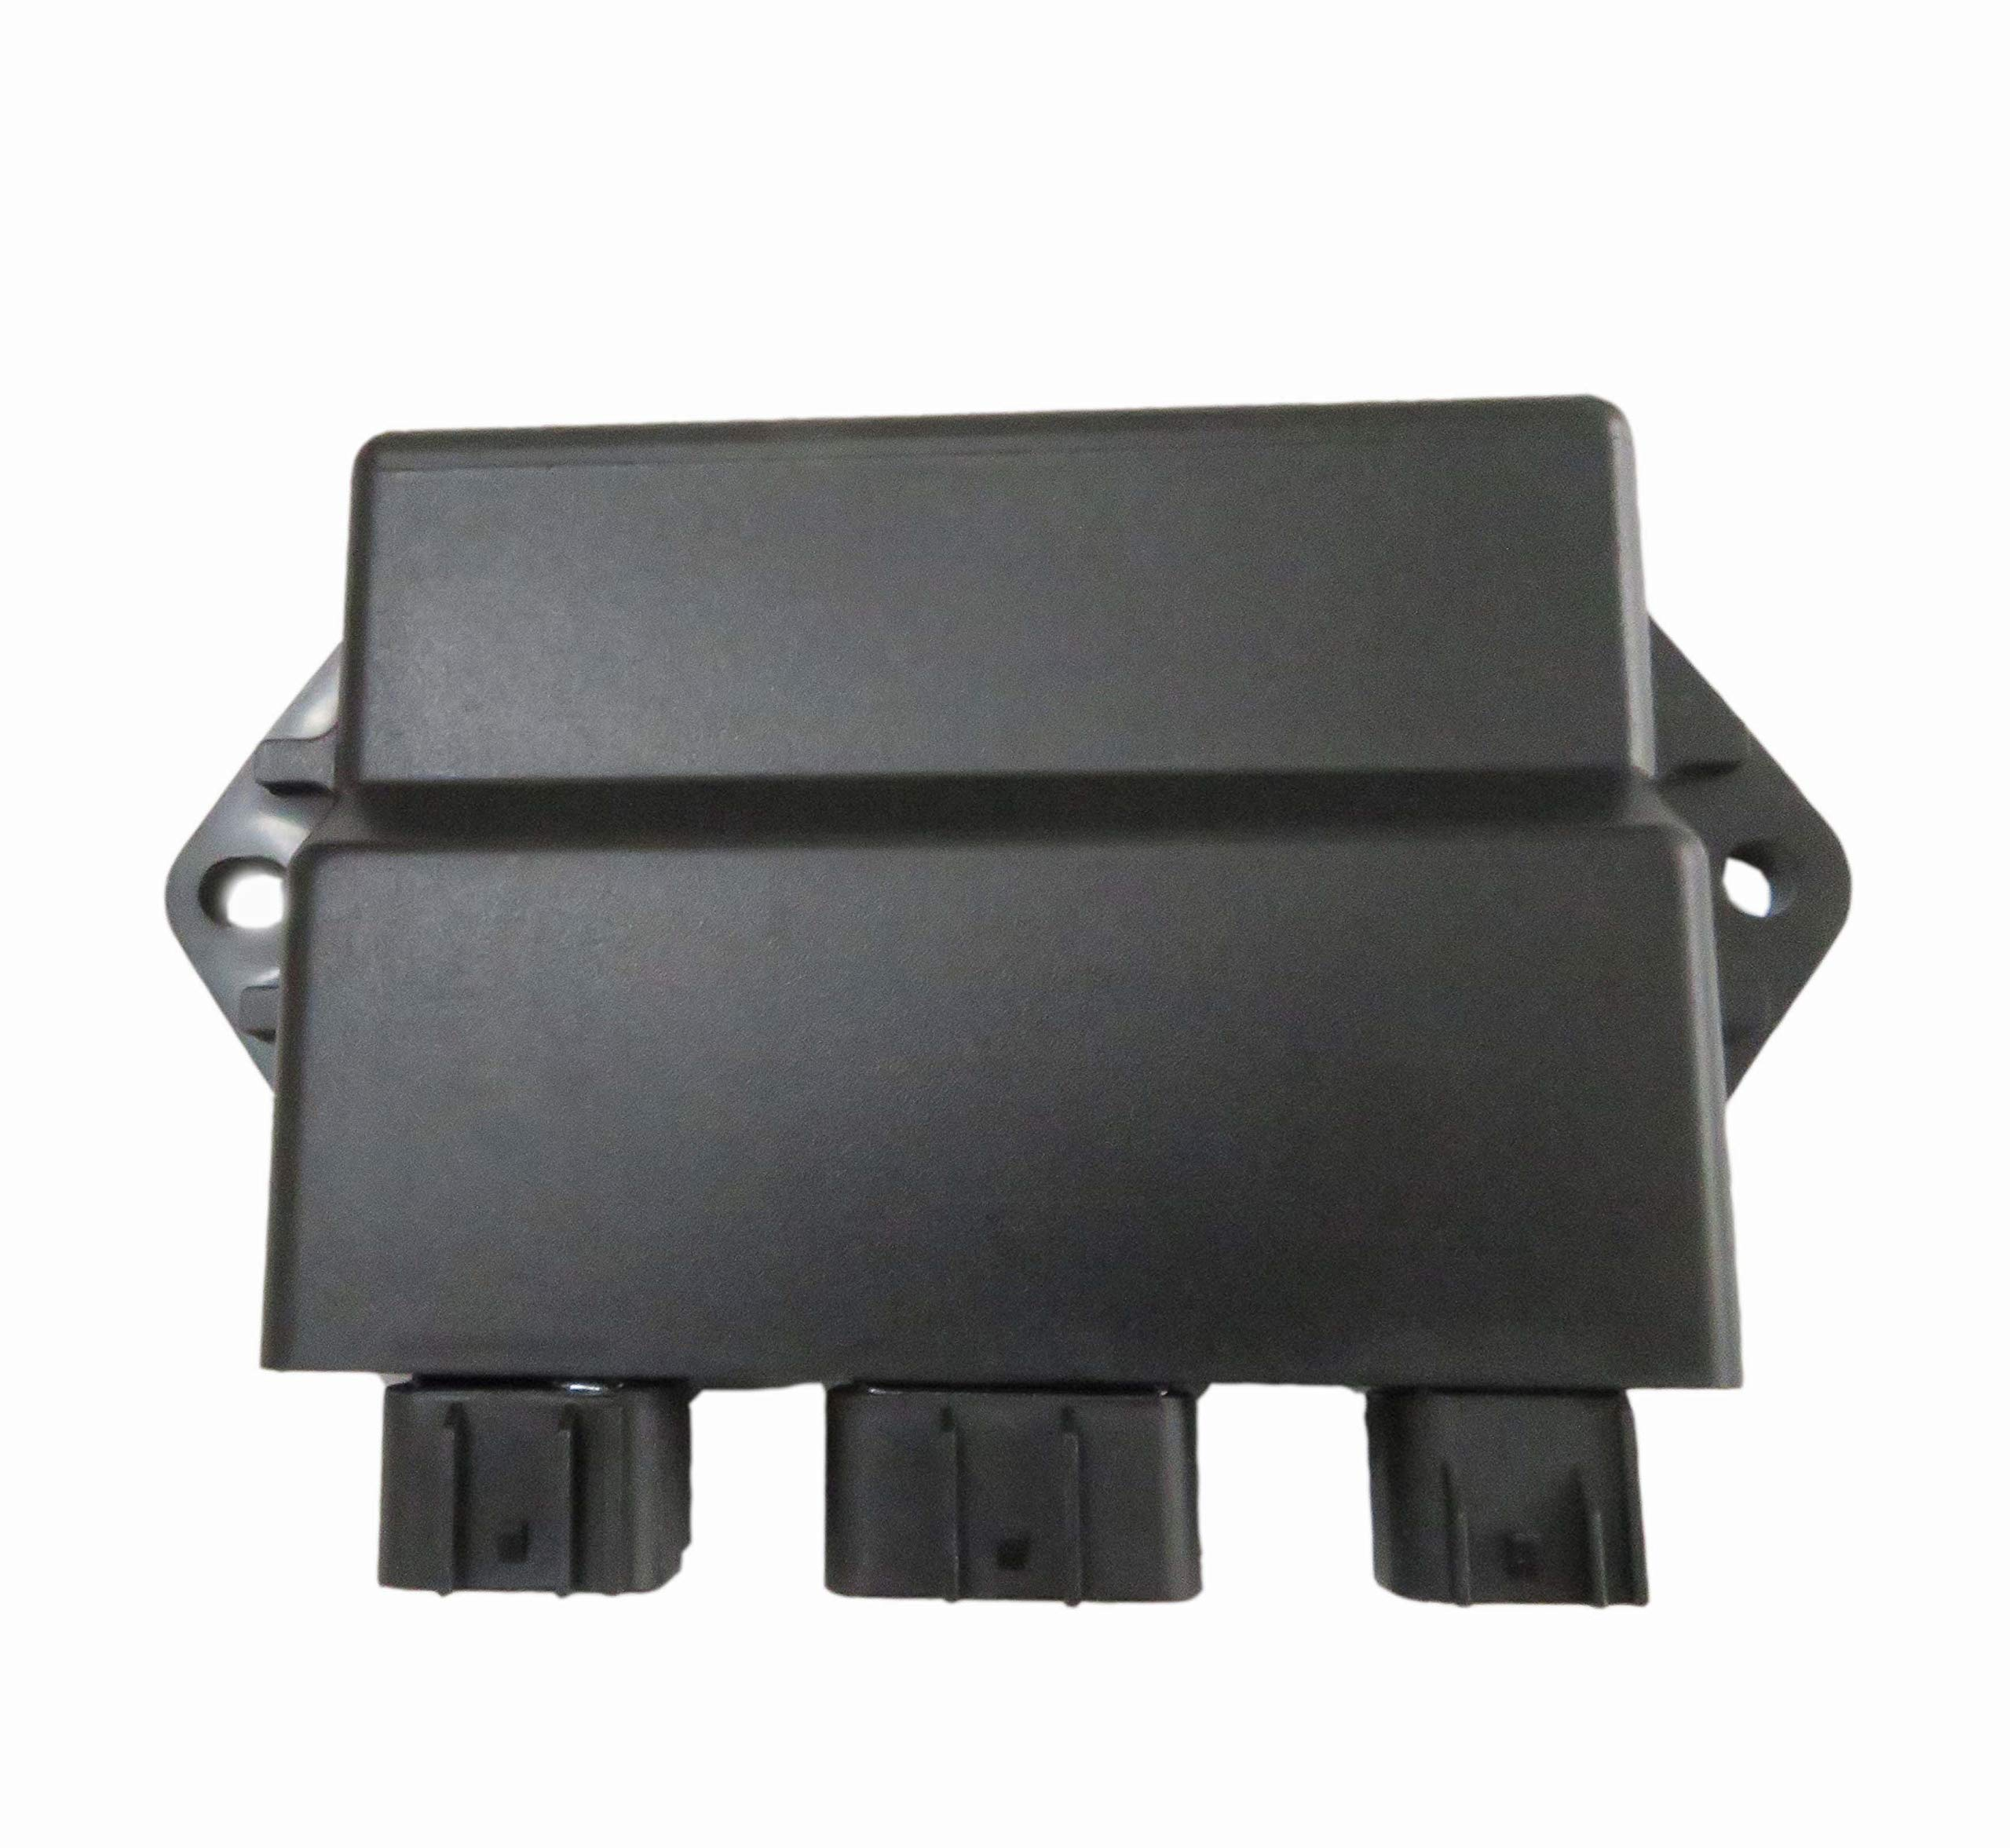 HIGH PERFORMANCE CDI Box Module for Yamaha Grizzly 660 YFM660F 4x4 YFM660 YFM 660 2002 2003 ATV Replaces OE# 5KM-85540-00-00 5KM-85540-10-00 by Moostore